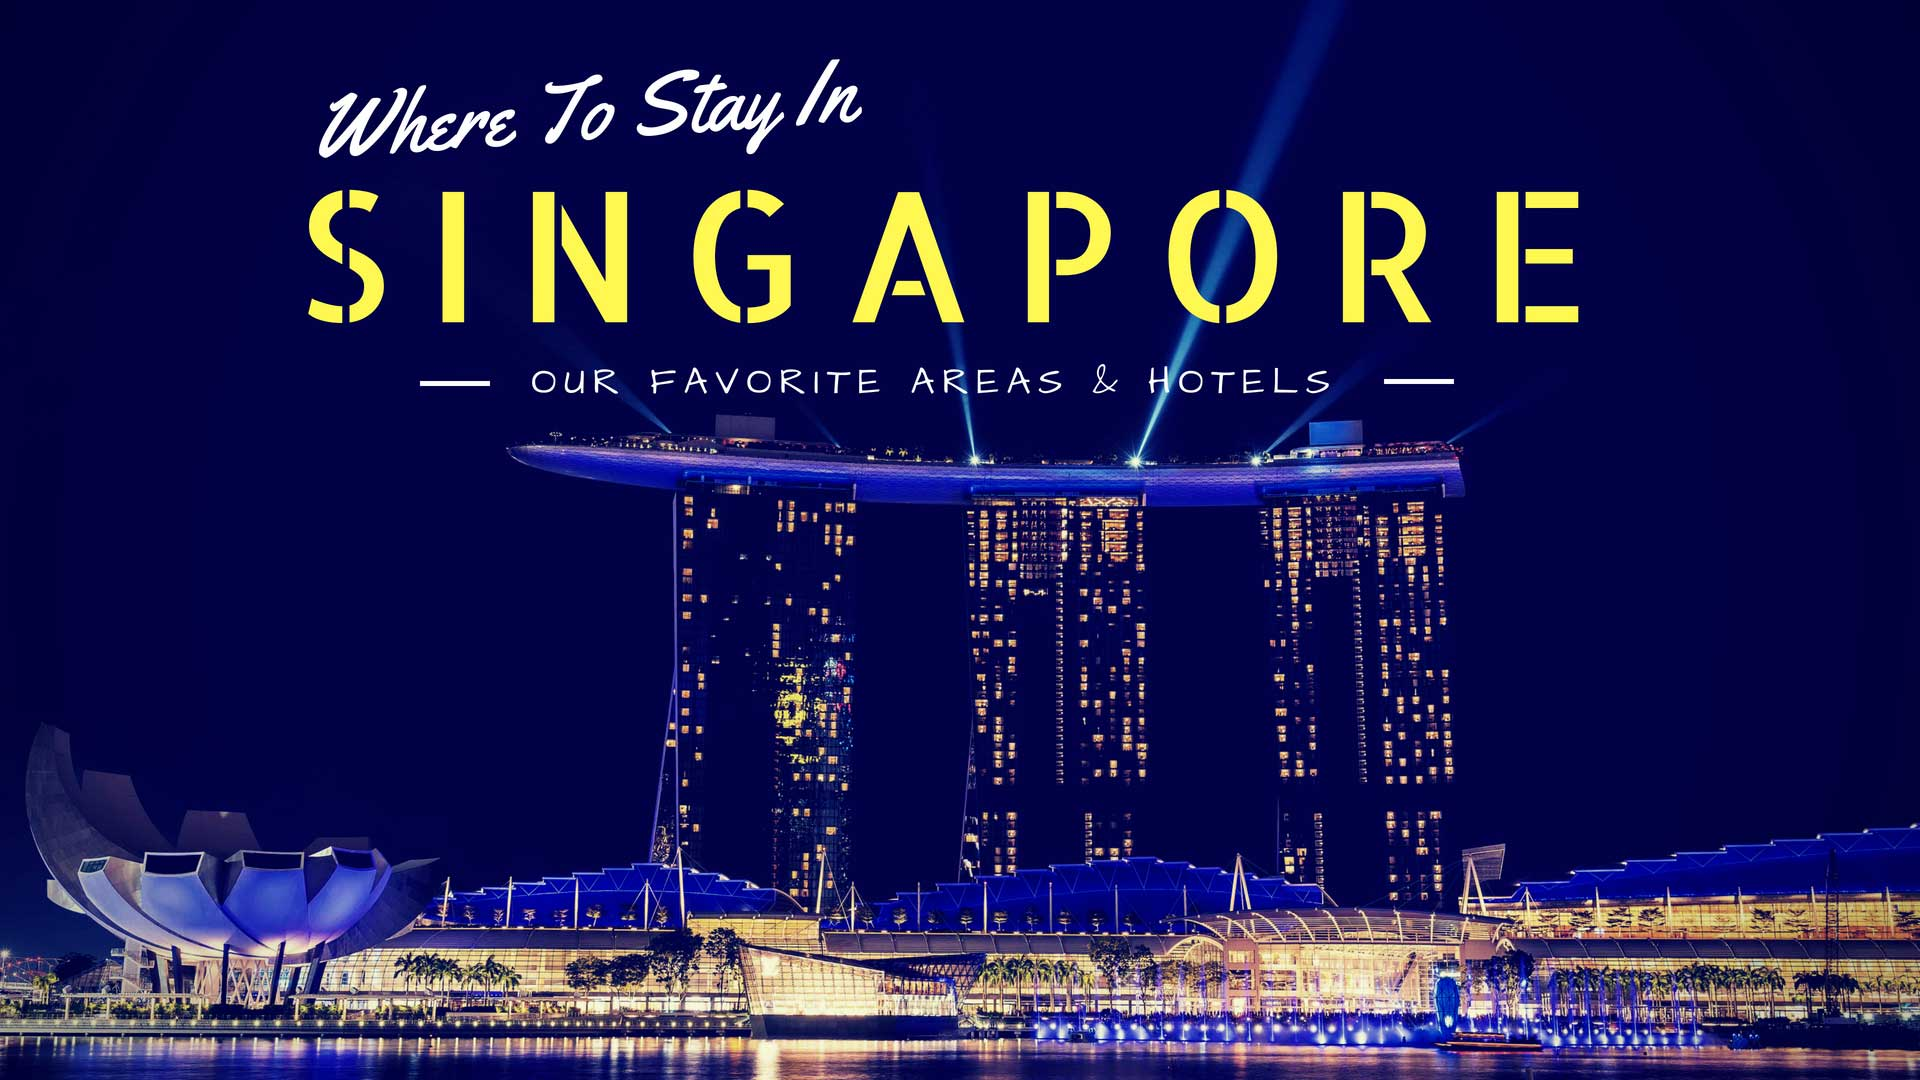 Where to Stay in Singapore - Our Favorite Areas & Hotels - Nerd Nomads